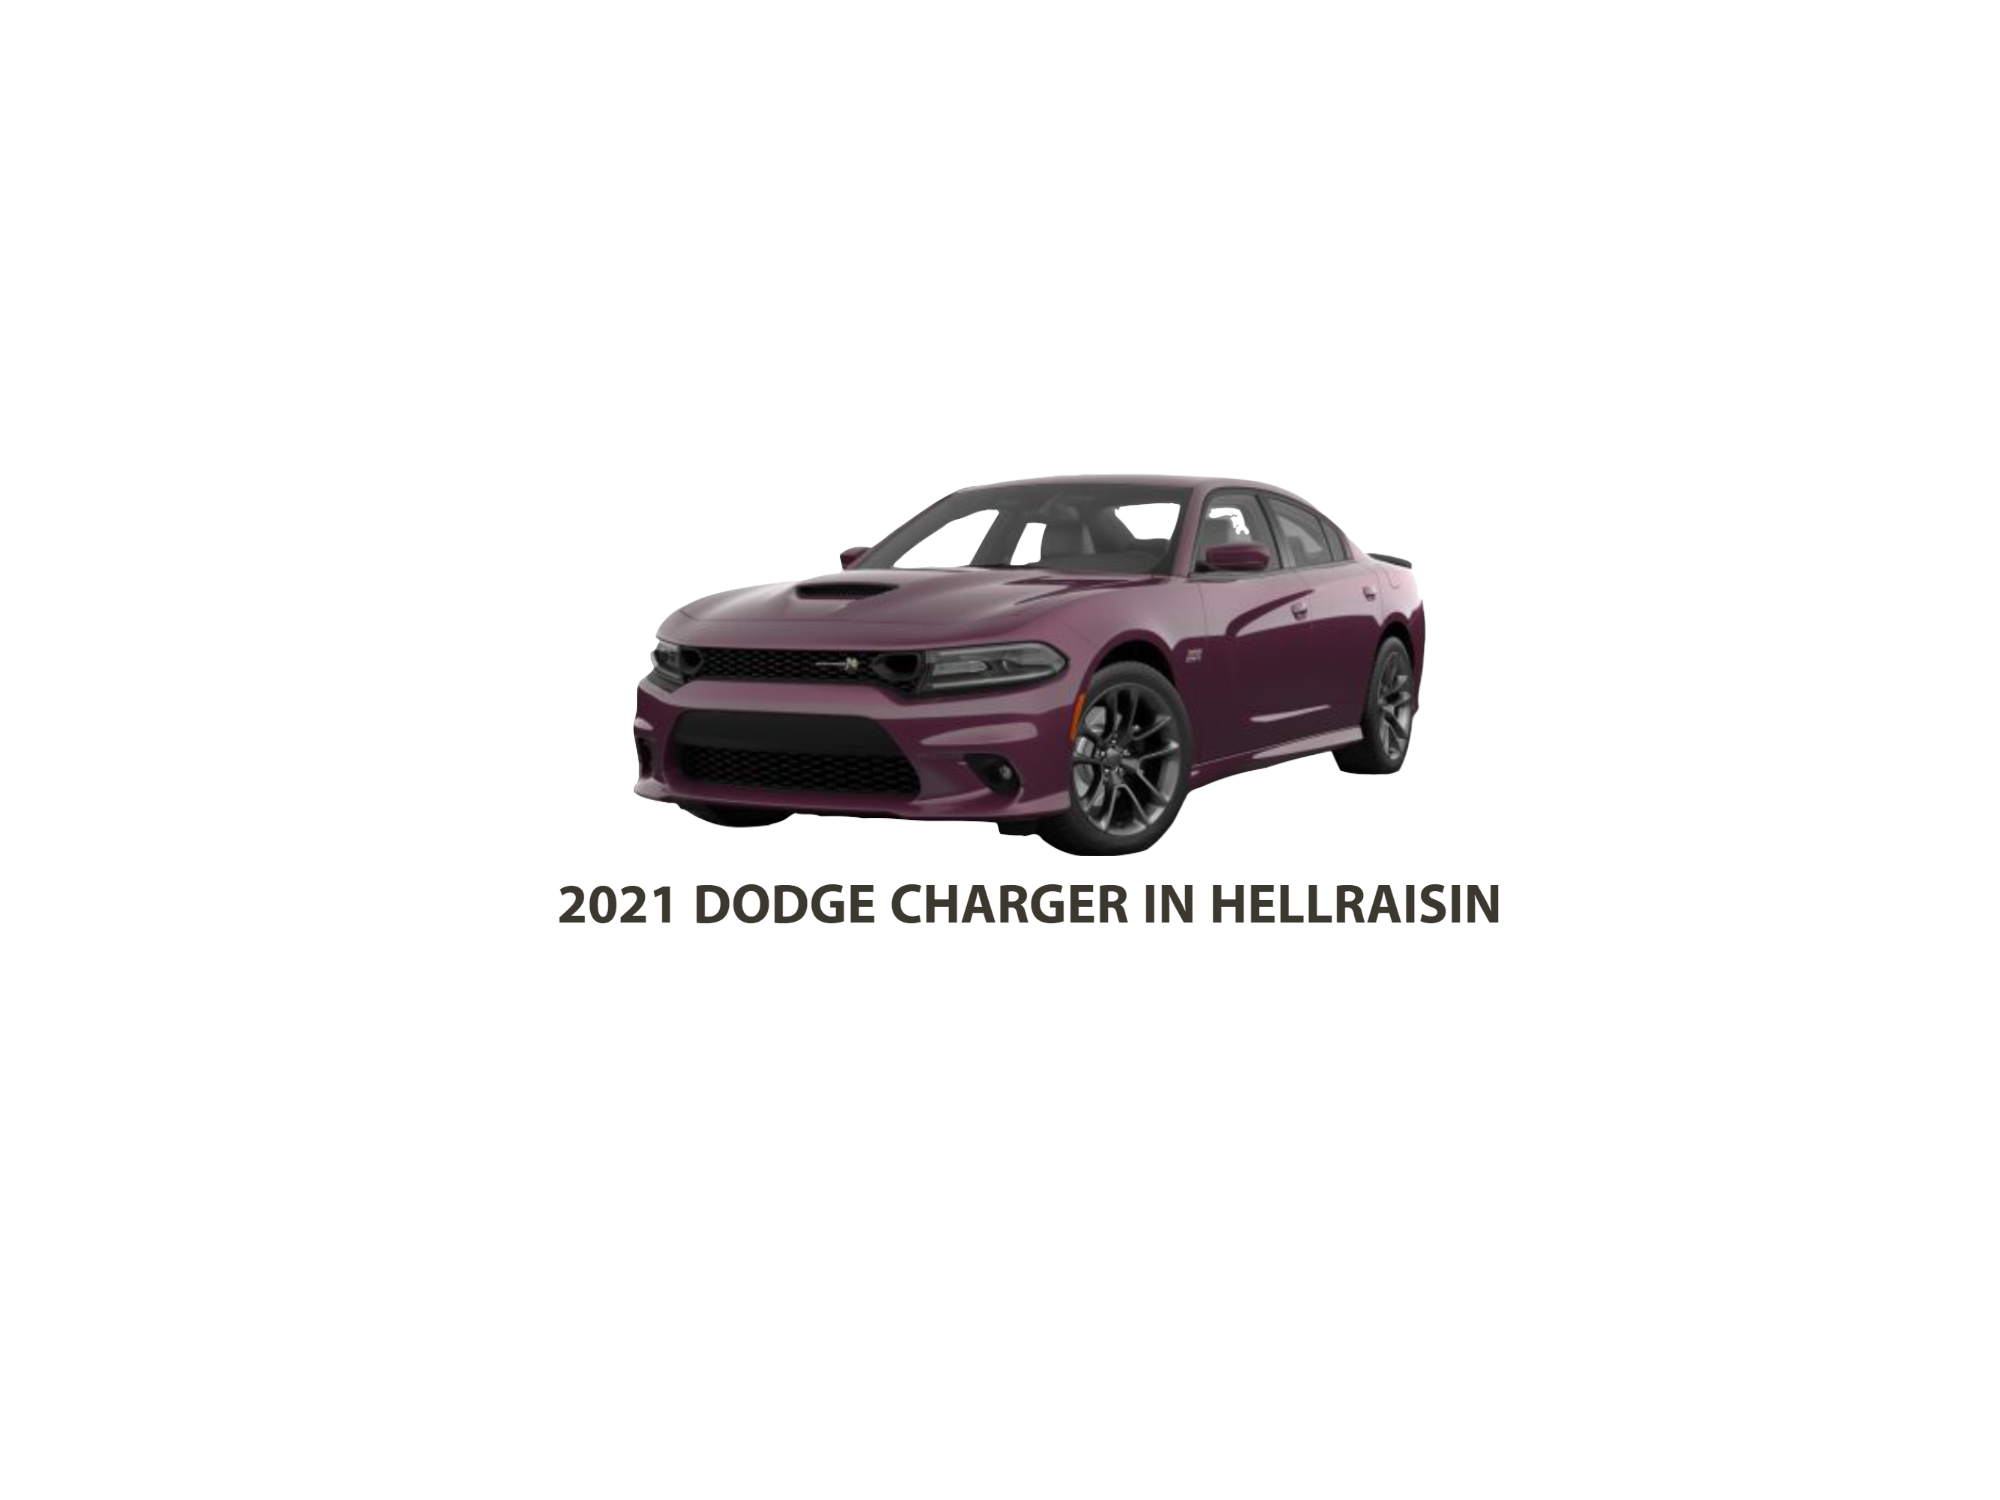 3/4 Front View of Dodge Charger in Hellraisin